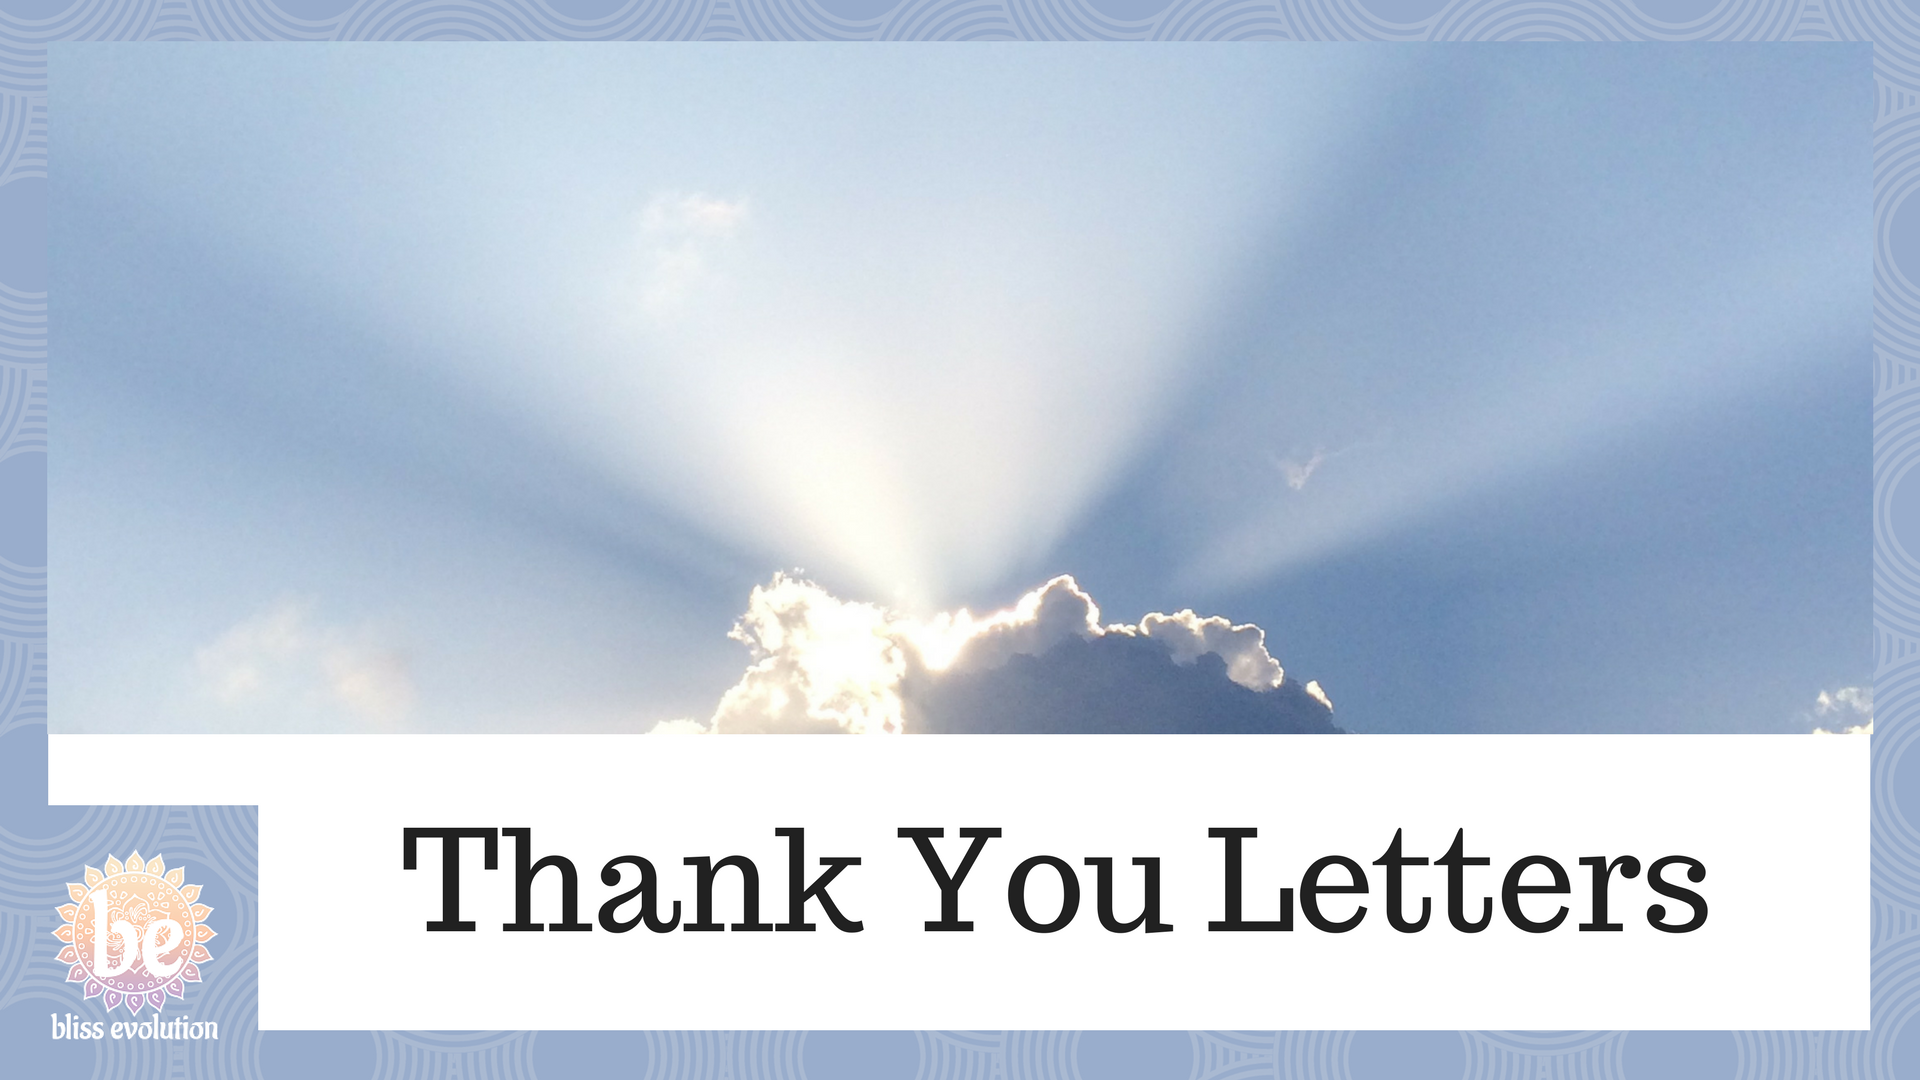 Thank You Letters, Interviewing Tips, Interview Tips, Thank You Letter Tips,  Thank